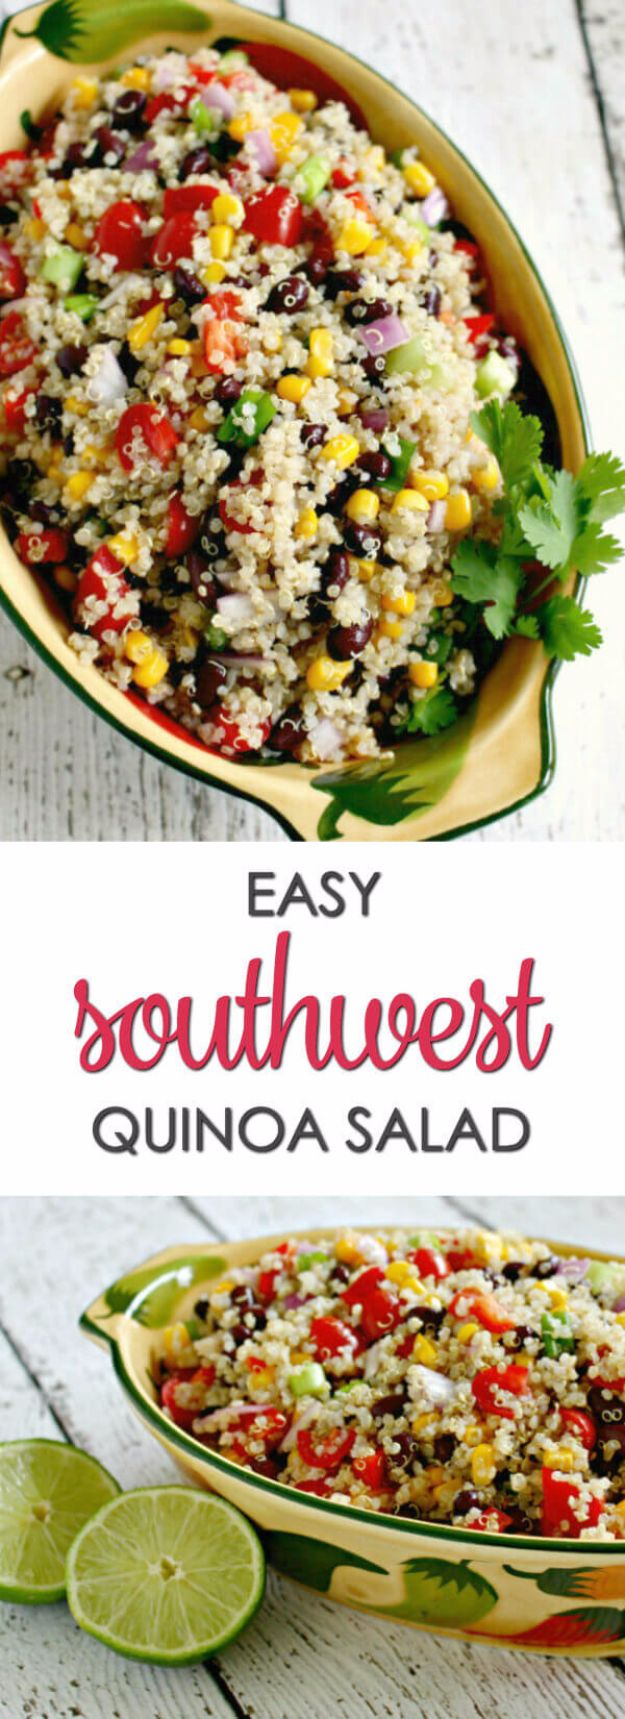 Easy Dinner Ideas for One - Southwest Quinoa Salad - Quick, Fast and Simple Recipes to Make for a Single Person - Freeze and Make Ahead Dinner Recipe Tips for Best Weeknight Dinners for Singles - Chicken, Fish, Vegetable, No Bake and Vegetarian Options - Crockpot, Microwave, Healthy, Lowfat Options http://diyjoy.com/easy-dinners-for-one